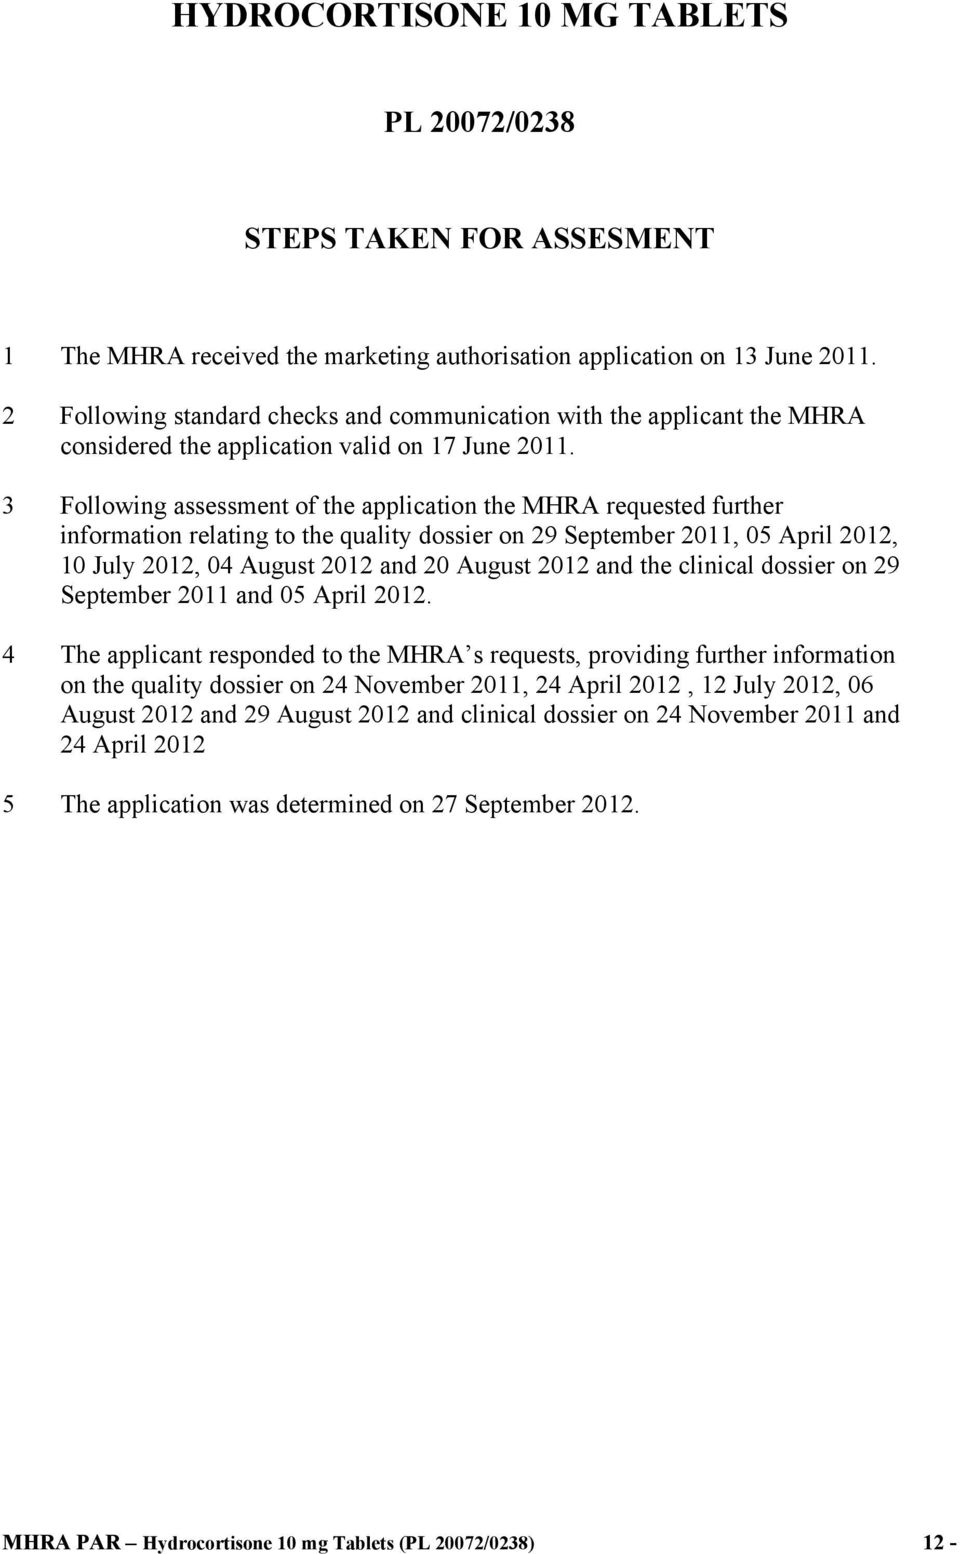 3 Following assessment of the application the MHRA requested further information relating to the quality dossier on 29 September 2011, 05 April 2012, 10 July 2012, 04 August 2012 and 20 August 2012